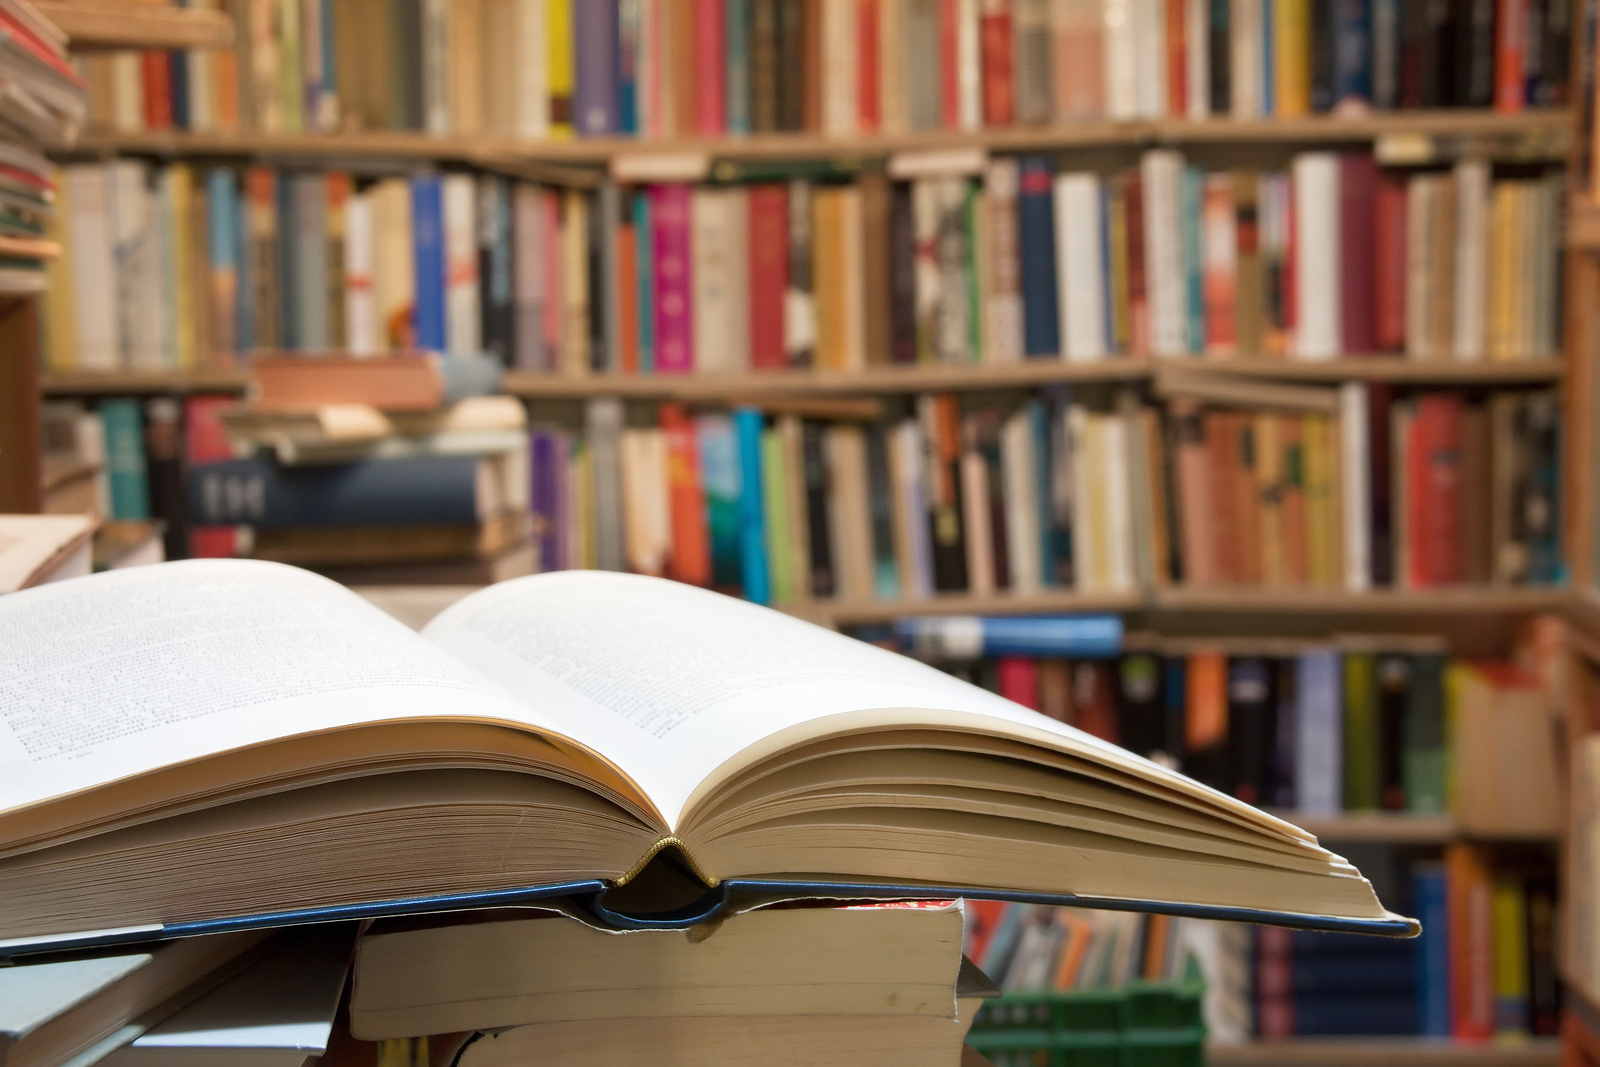 Soak up the literature at the Wigtown Book Festival in the last week of September, in your own guided tour of Scotland